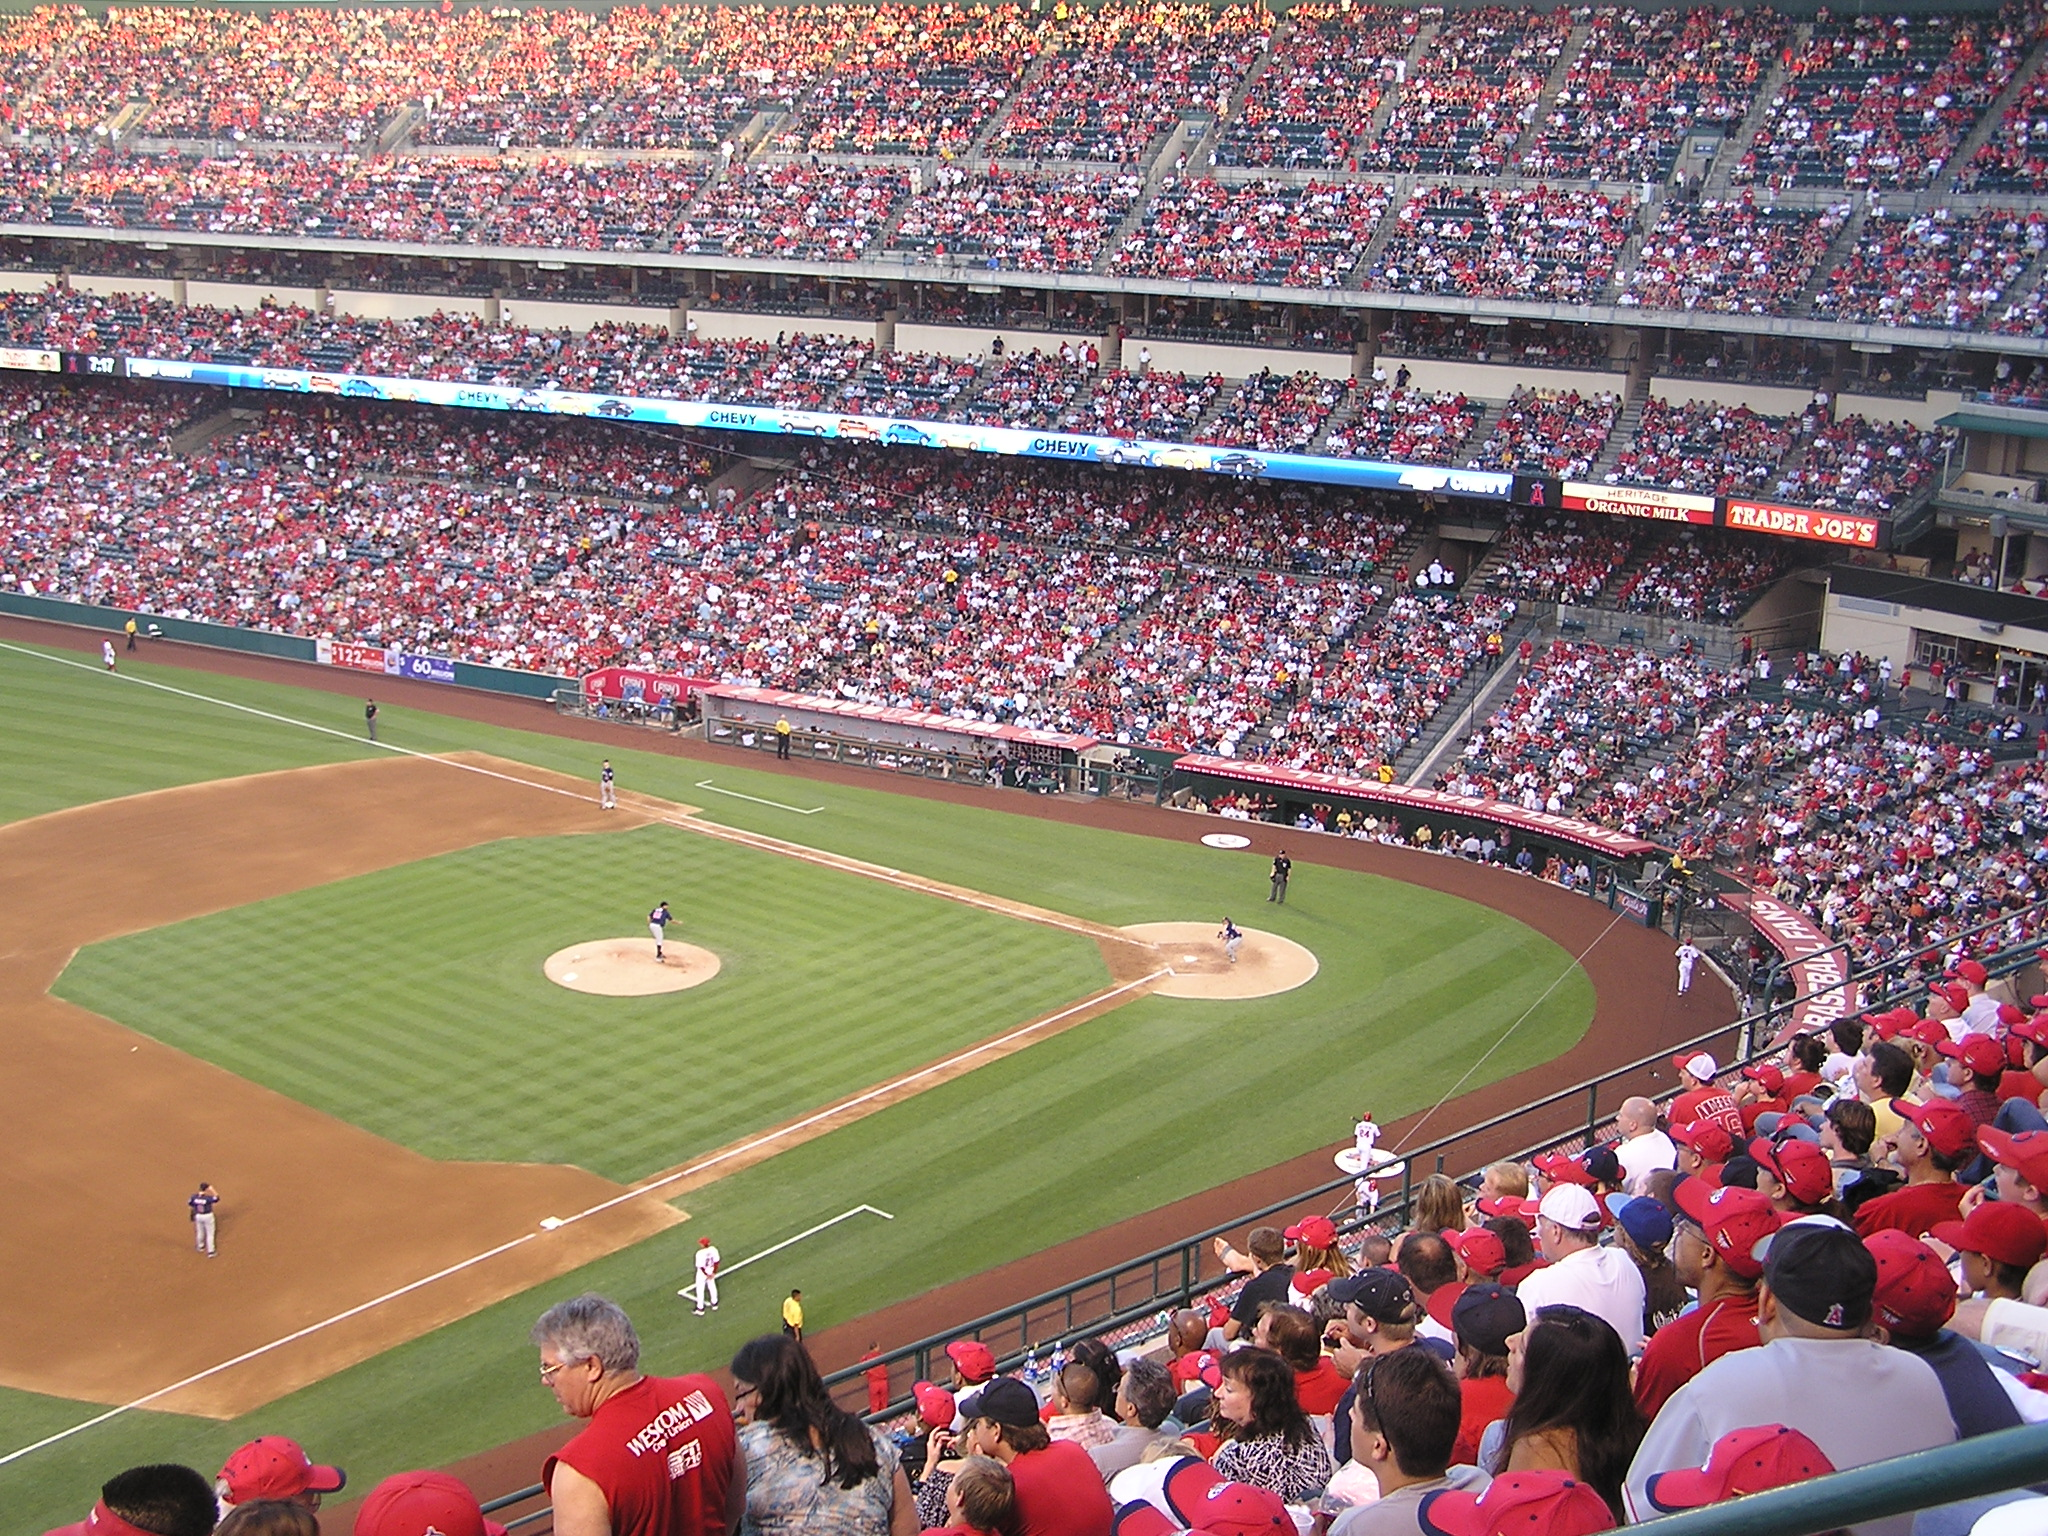 Angels Stadium from the 3rd base side